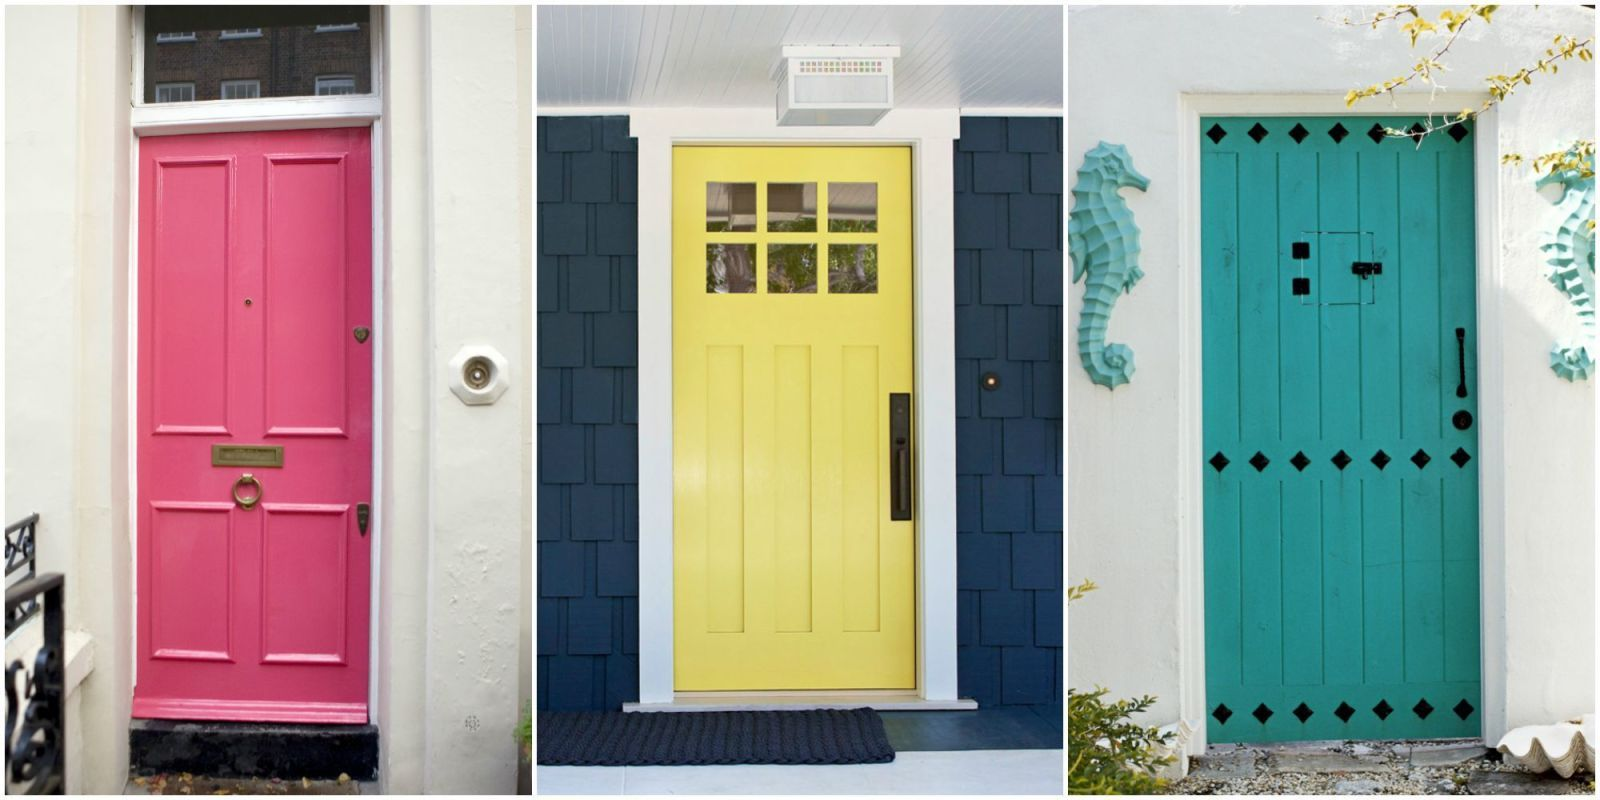 & Front Door Colors - What Your Front Door Says About You pezcame.com